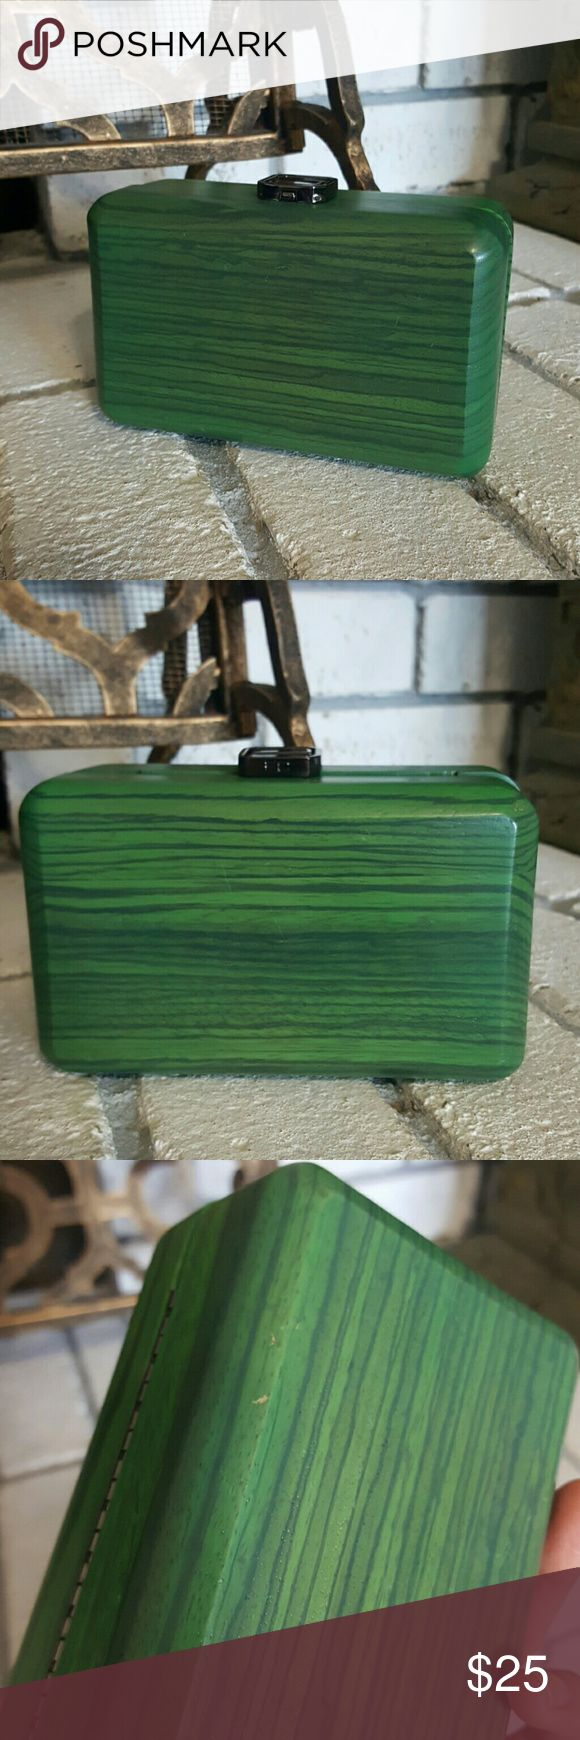 French Connection Wood Clutch Bag Super unique French Connection handbag.. Clutch or shoulder bag.. Made of 100% green wood.. Never used.. Has some minor chips on  outside  and the top clasp shuts awkwardly but still remains closed. Purchased from Nordstrom. French Connection Bags Clutches & Wristlets